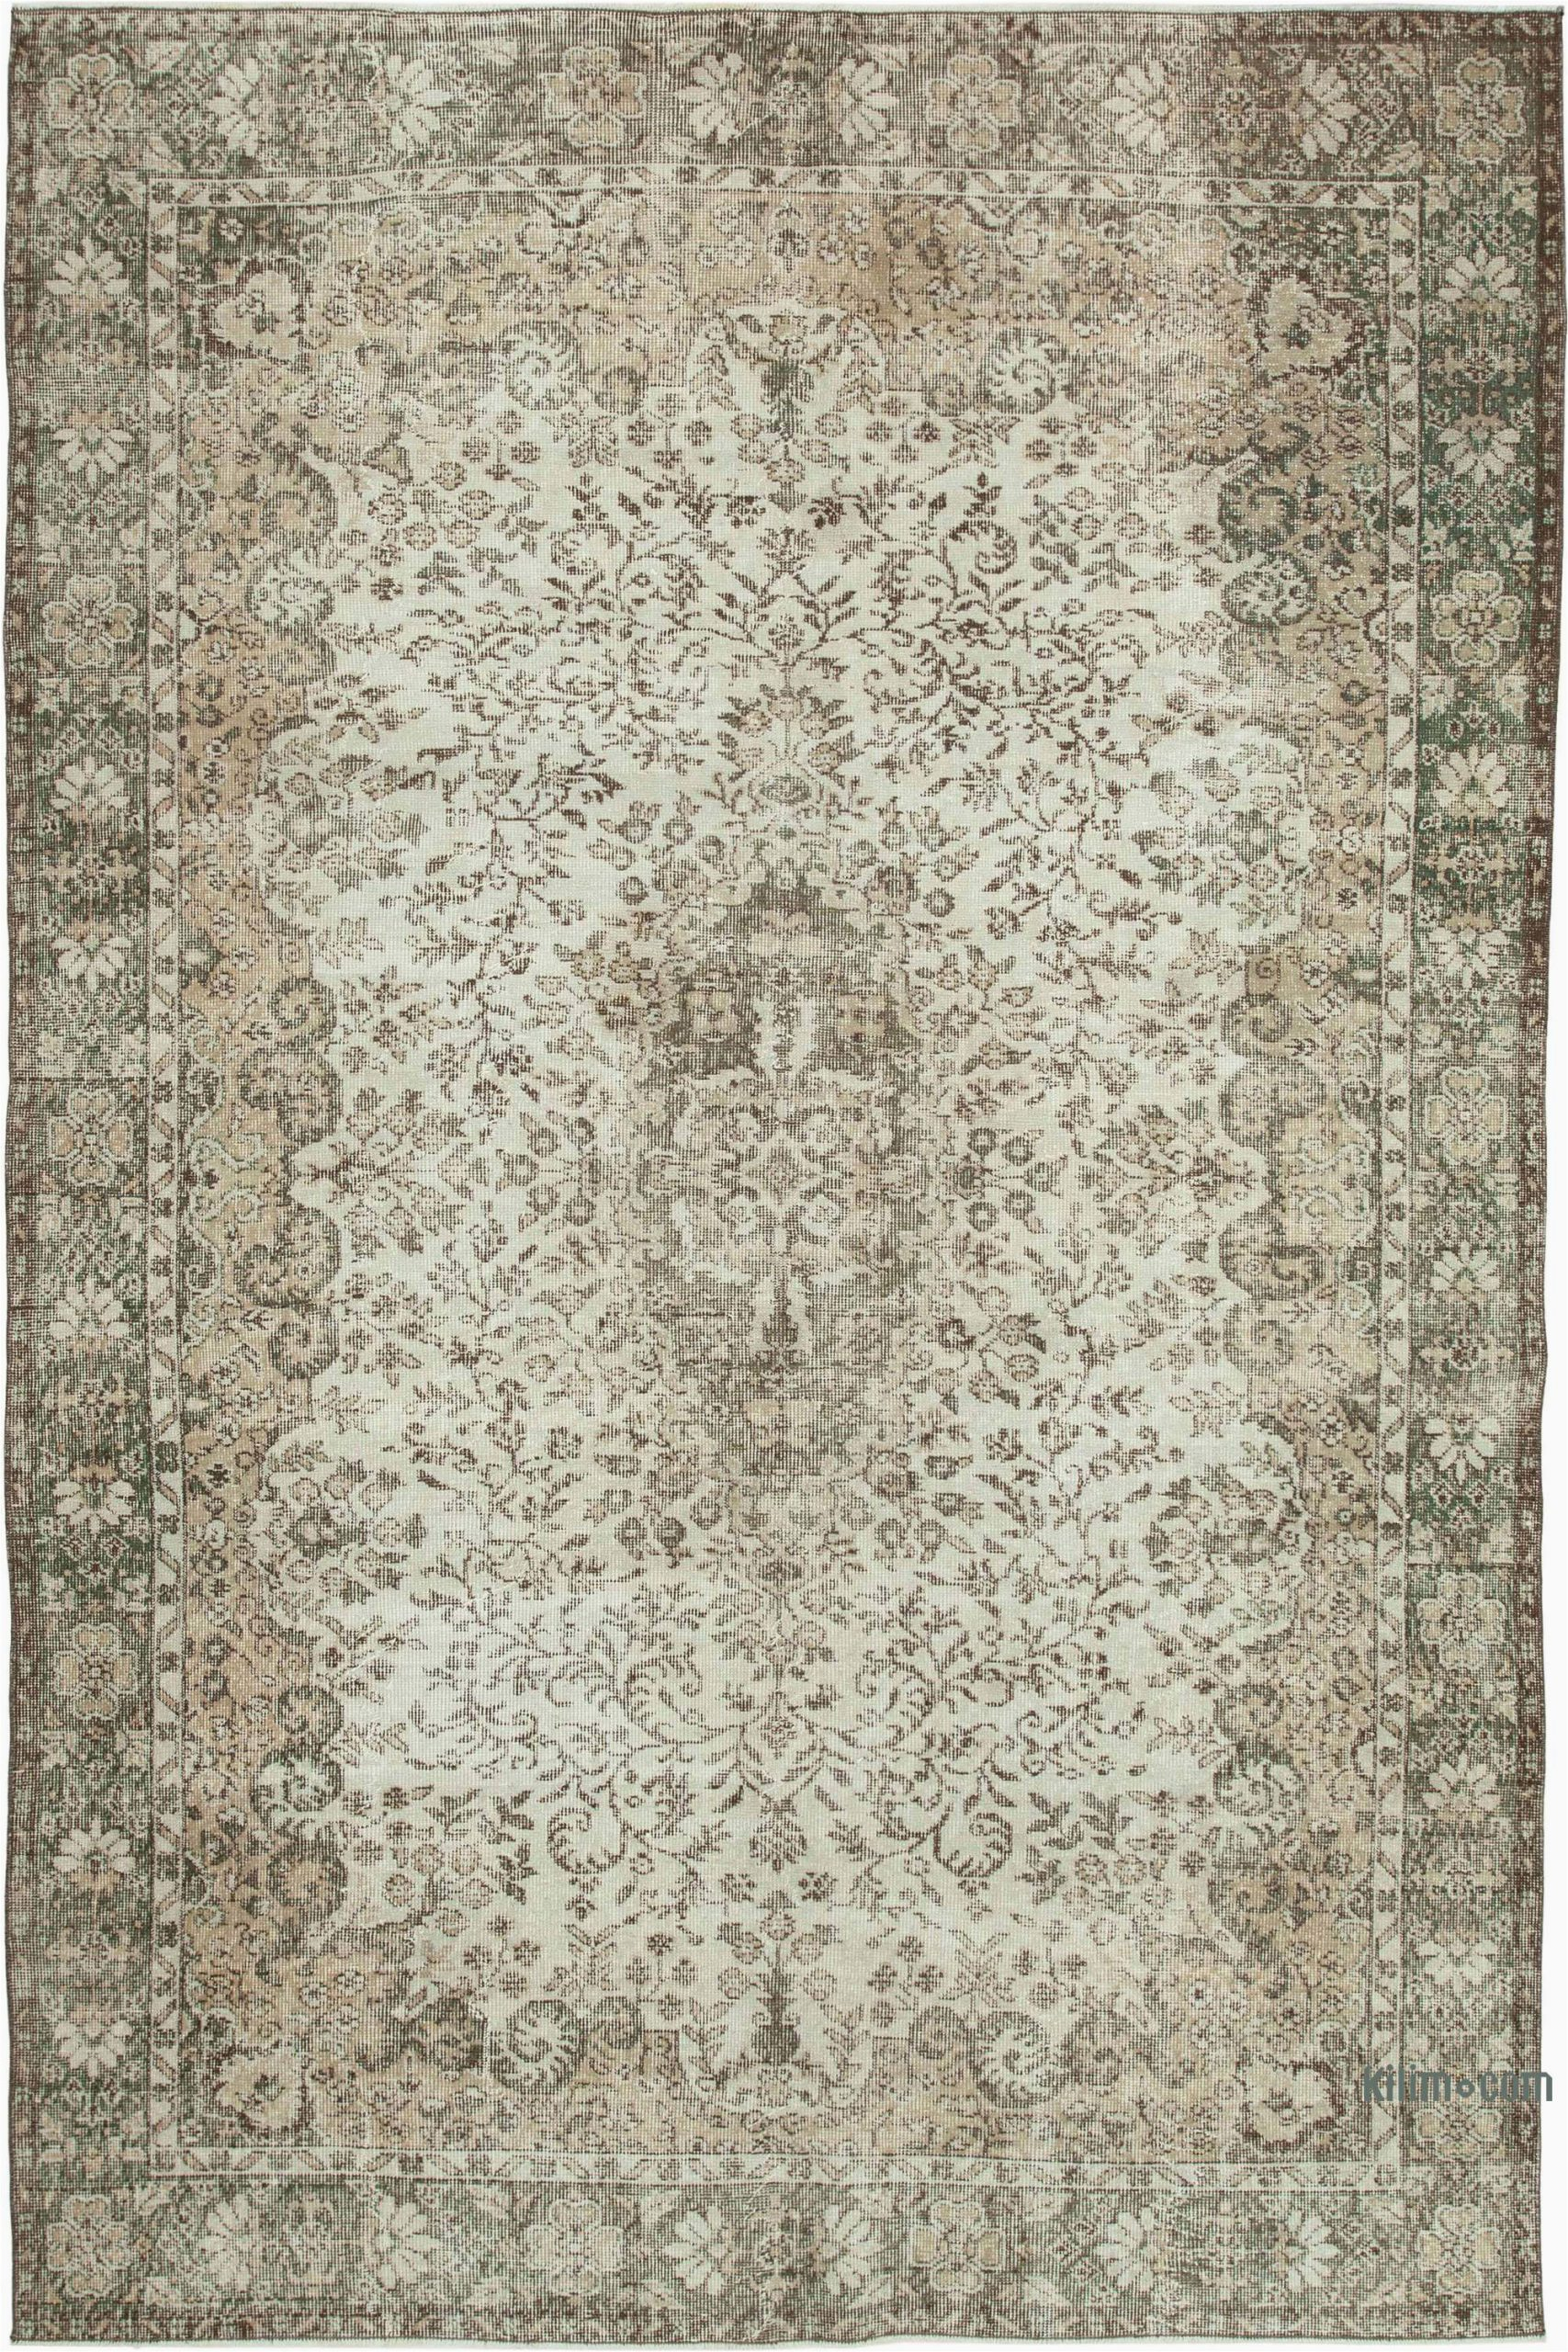 k vintage turkish hand knotted area rug